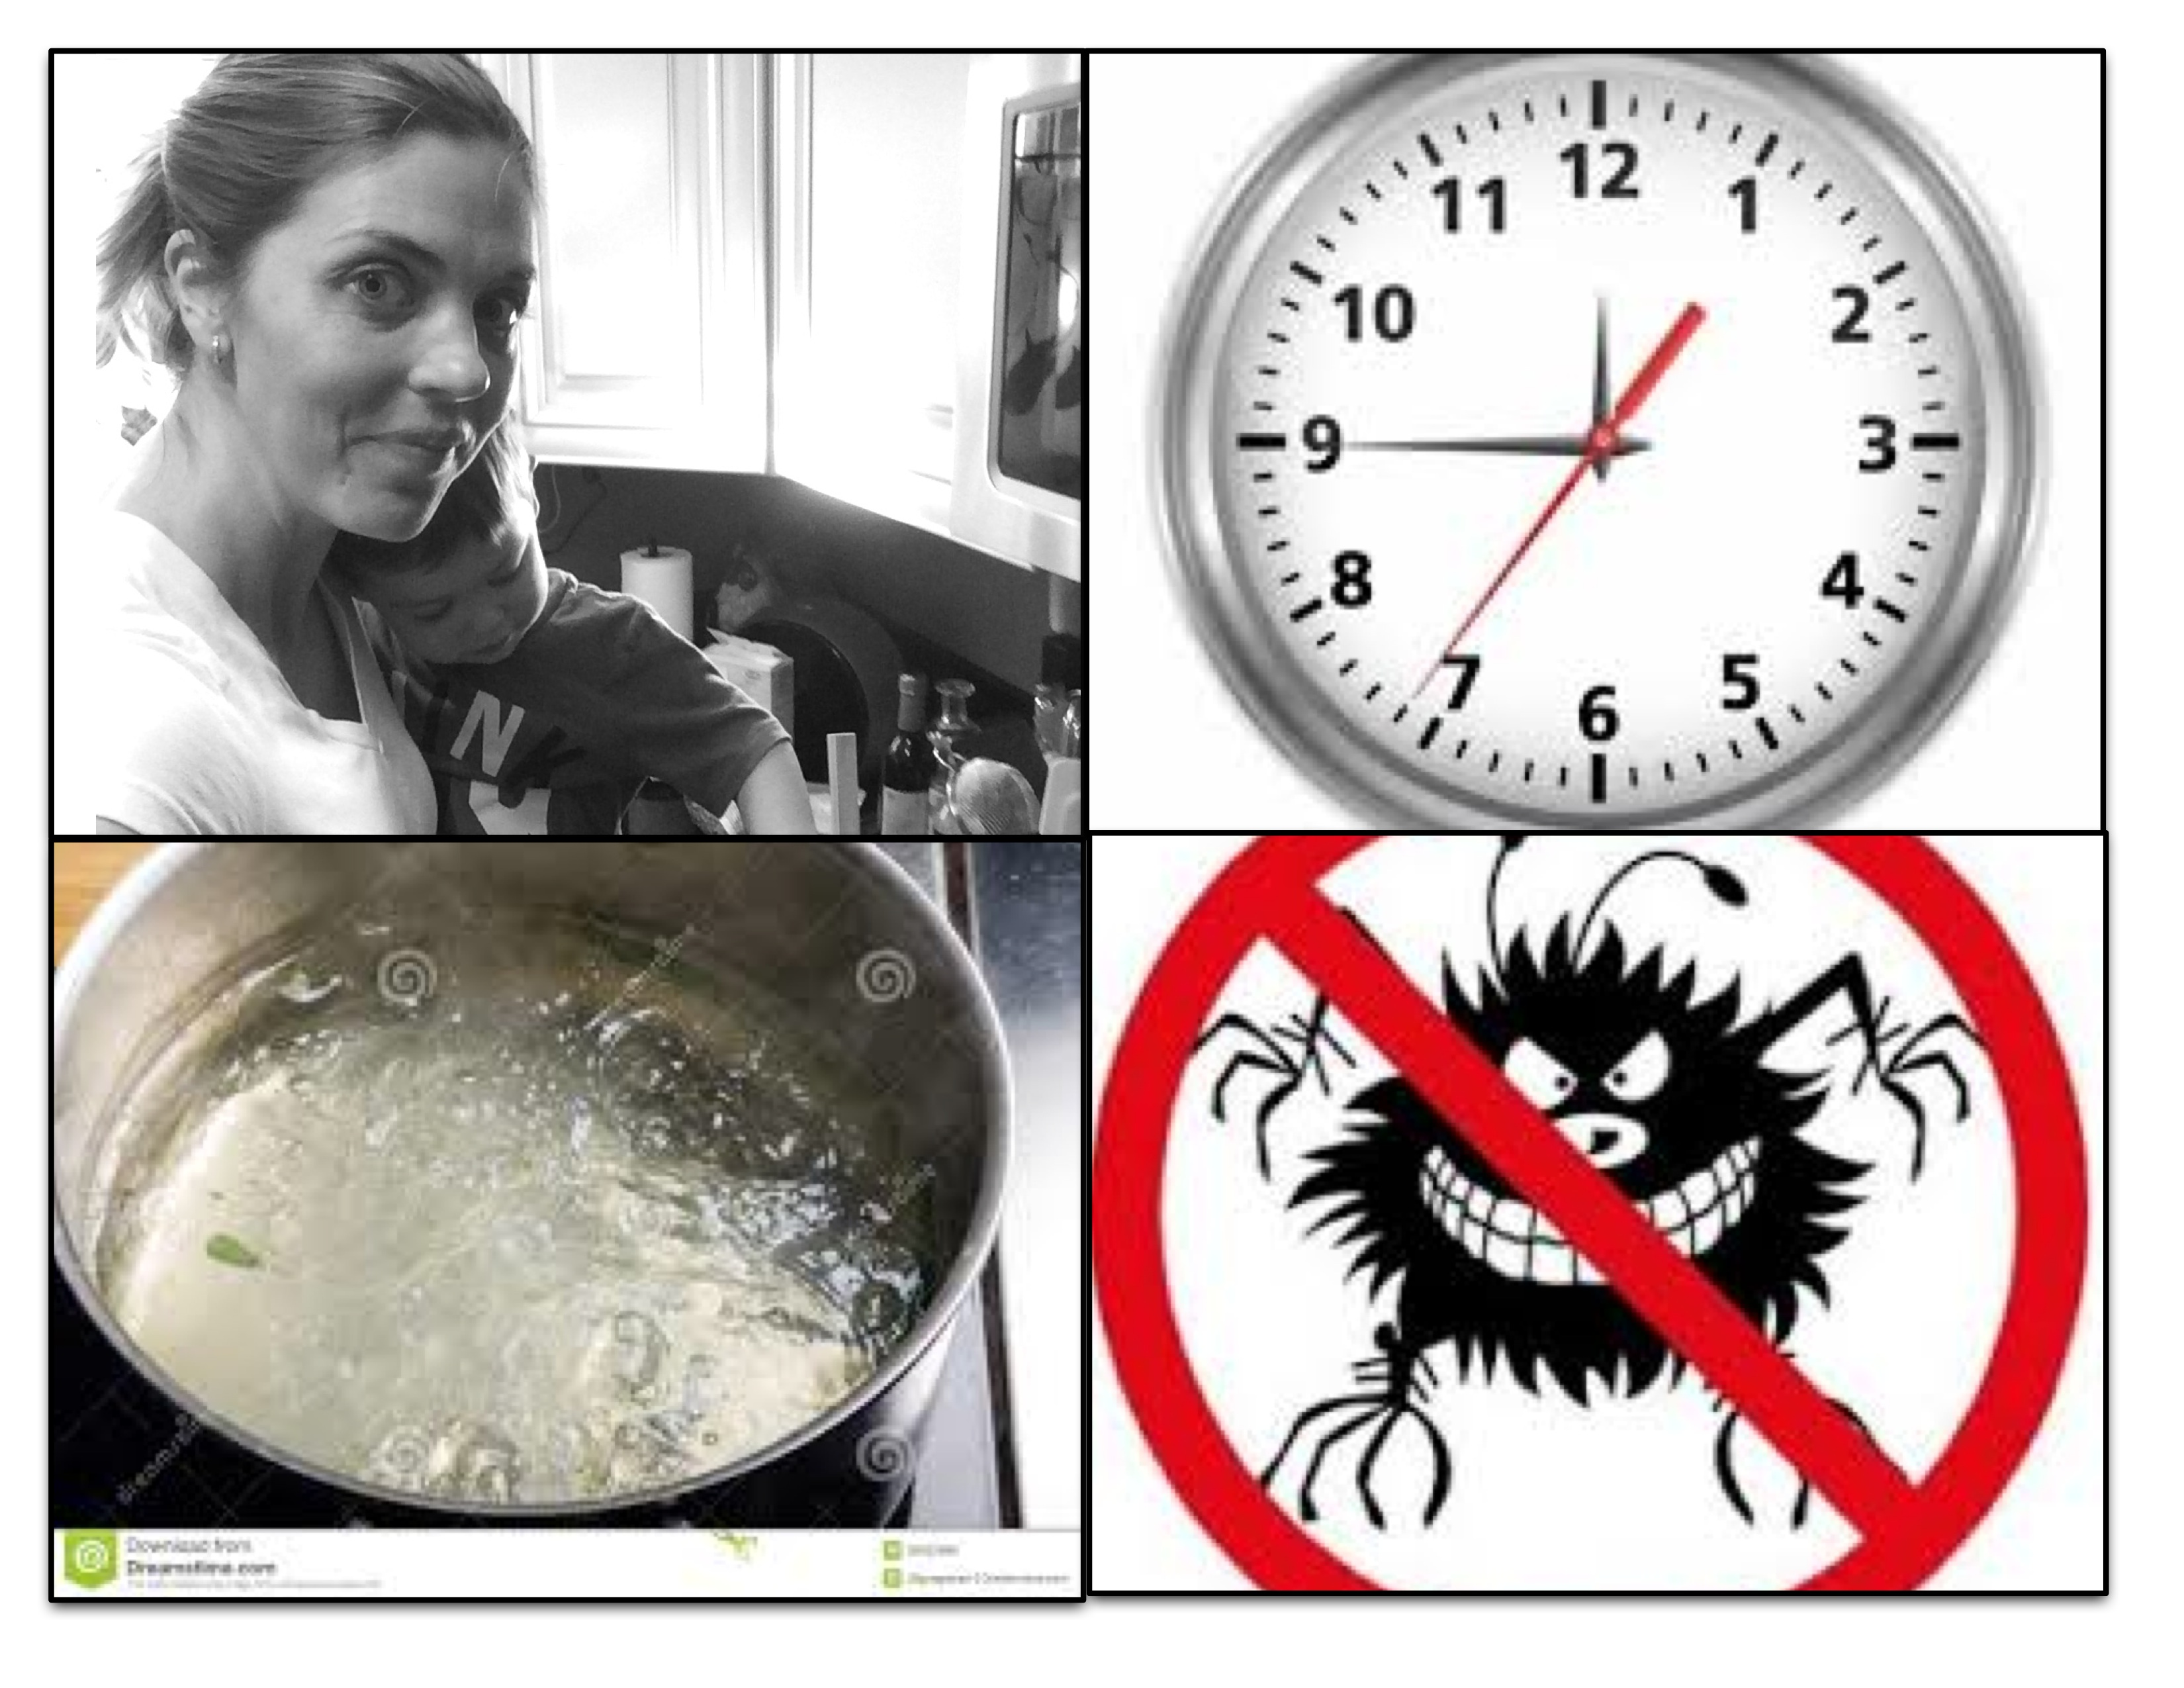 Cooking while trying to kill lice